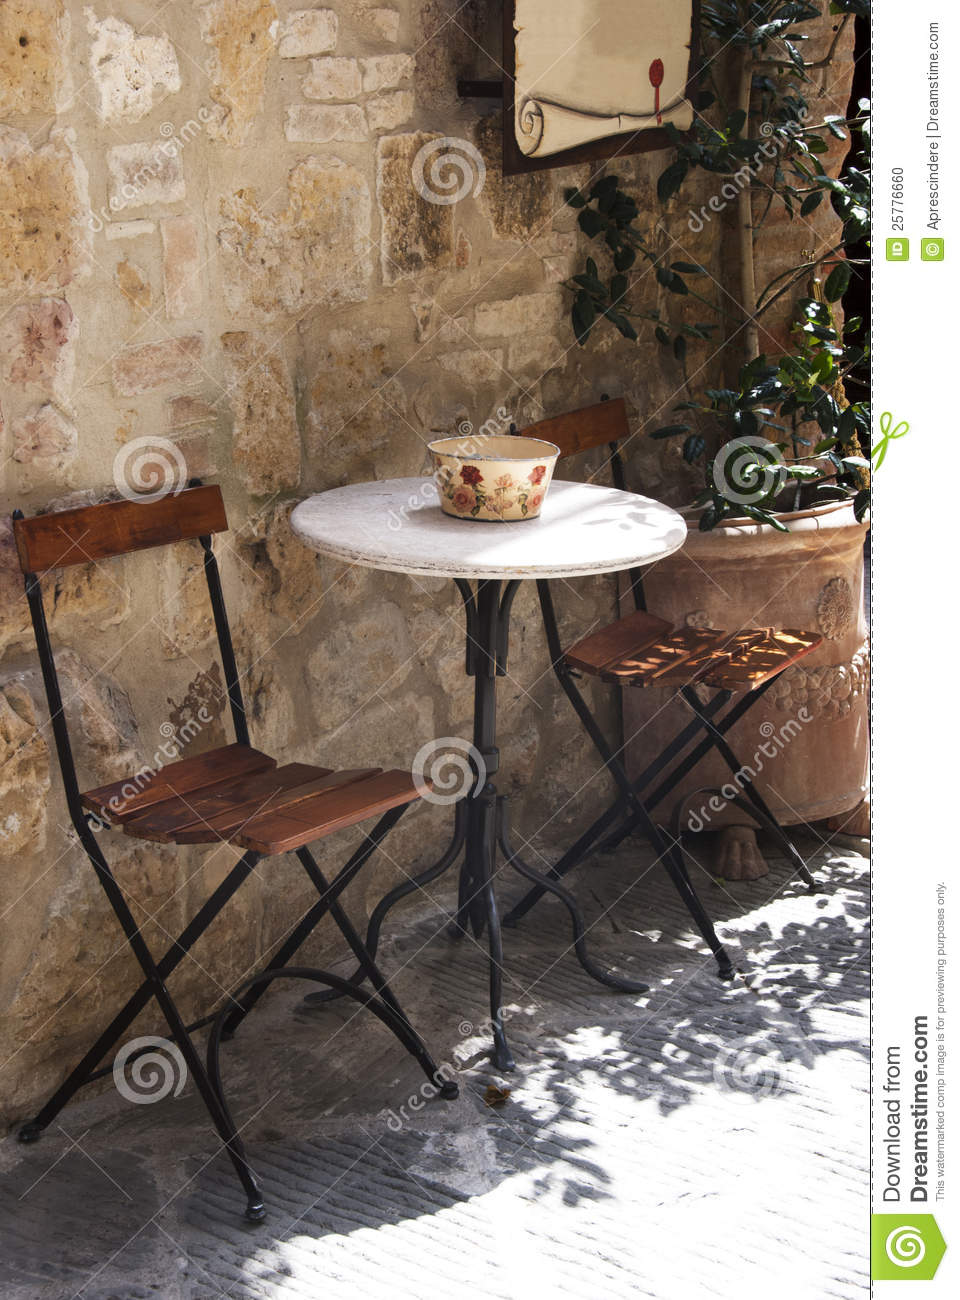 Outdoor Cafe Stock Photo Image 25776660